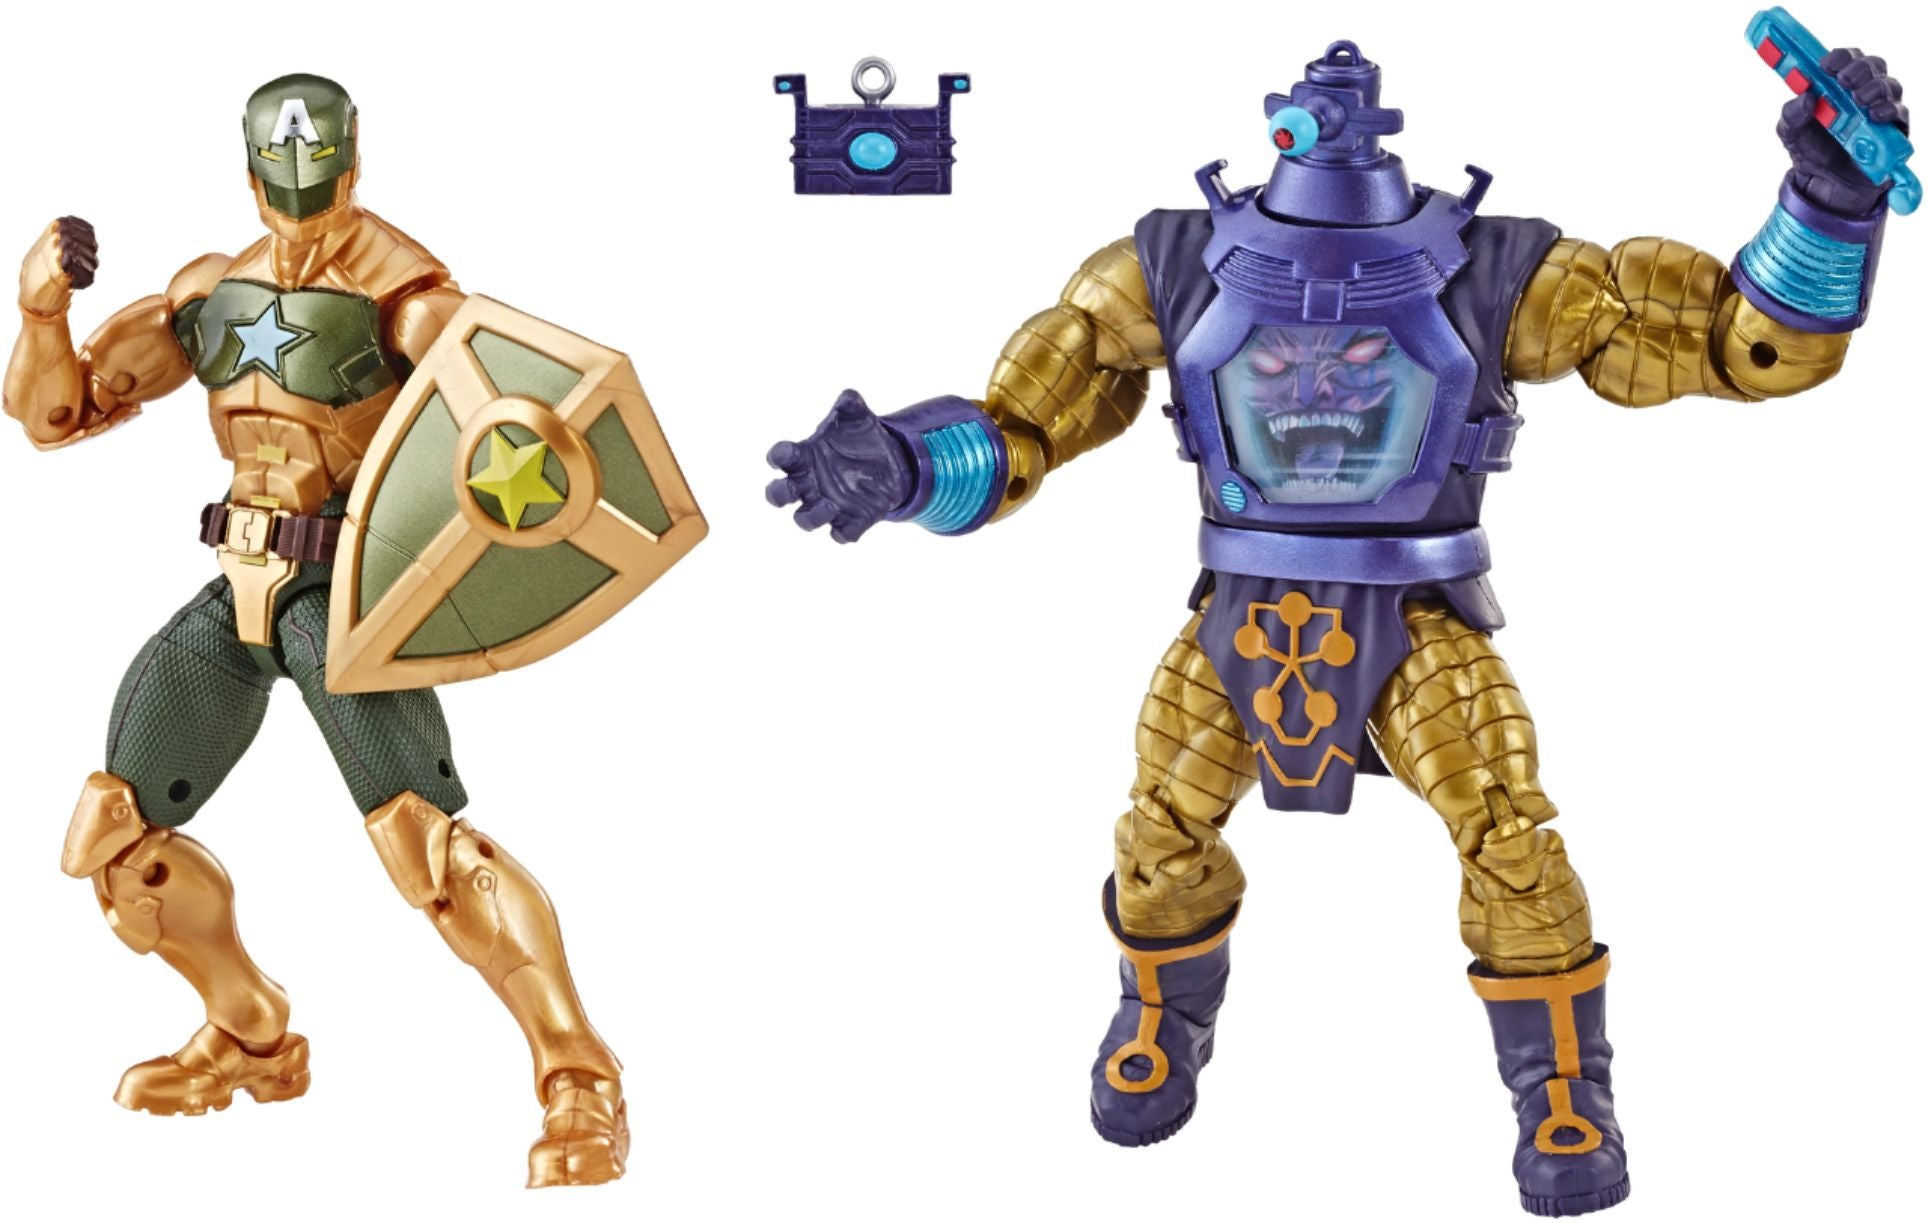 Marvel Legends Arnim Zola and Supreme Captain America 6-Inch Action Figures - Exclusive